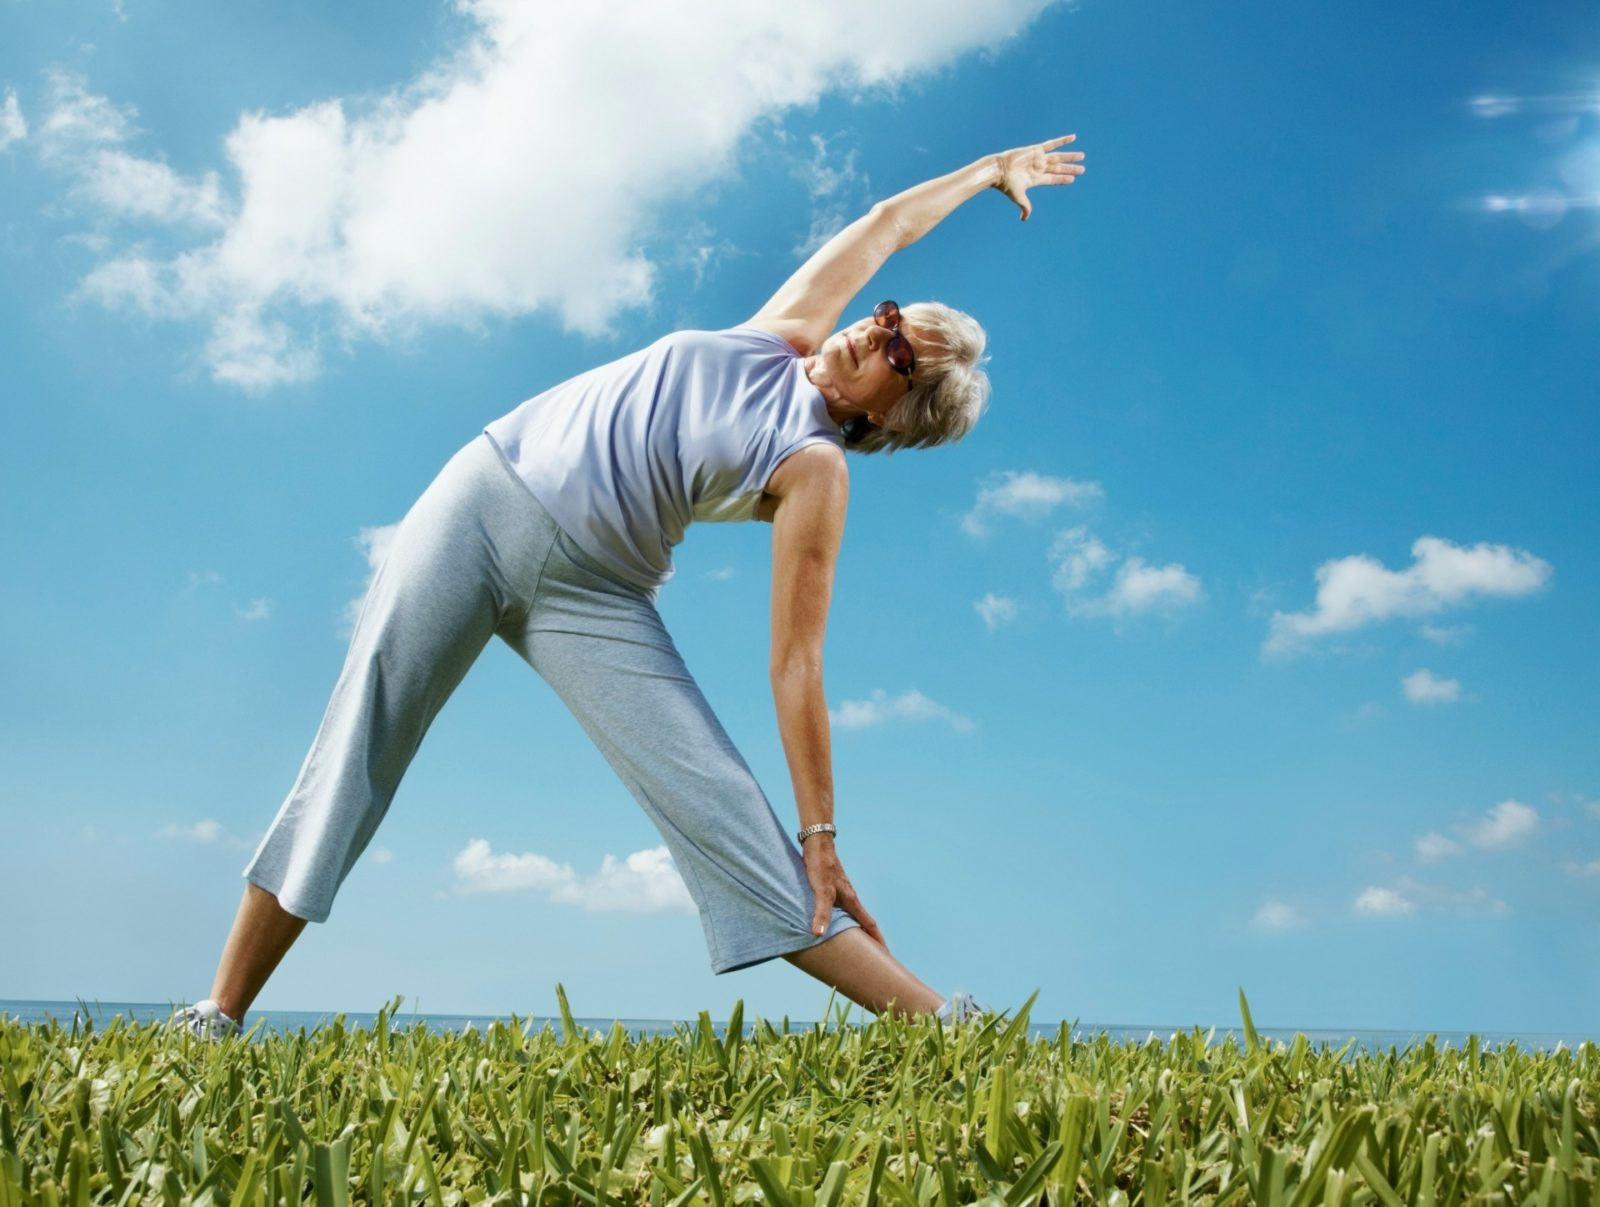 Daily stretching can reduce pain, but should be done as part of a bigger treatment plan.